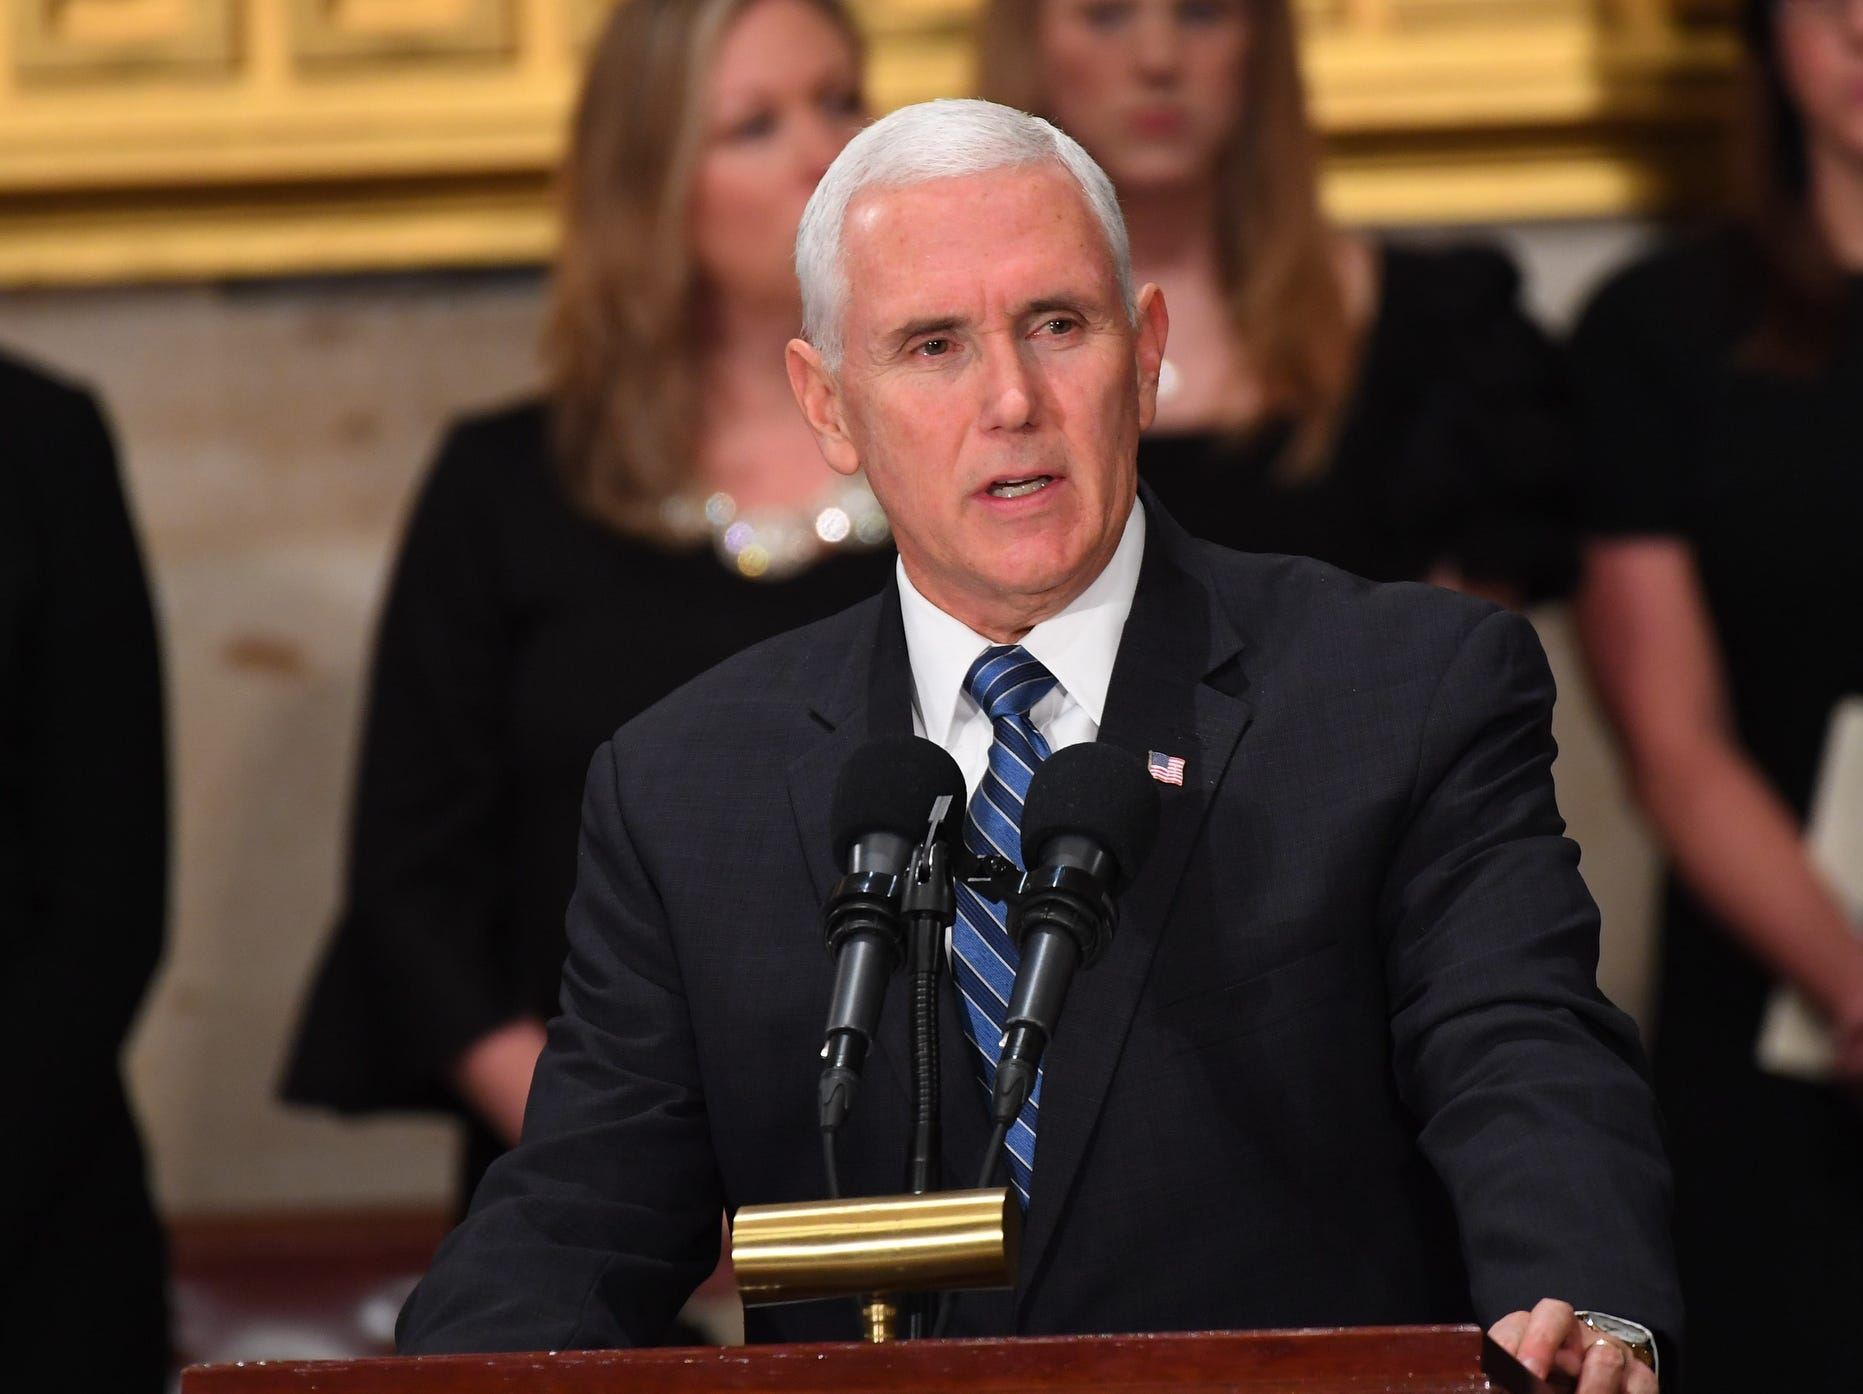 Vice President Mike Pence speaks during the Capitol Rotunda service for the late President George H.W. Bush.